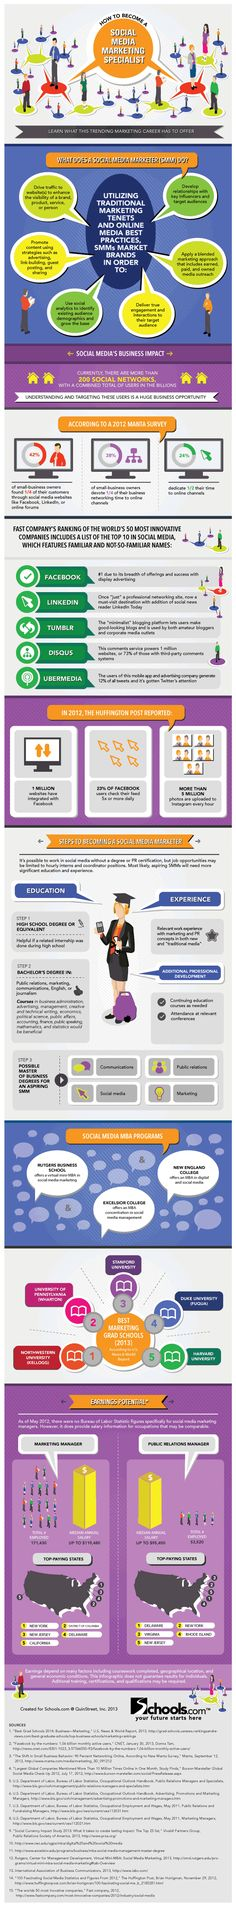 How to become a Social Media Marketing specialist #infographic (repinned by @Ricardo Sudario Llera)